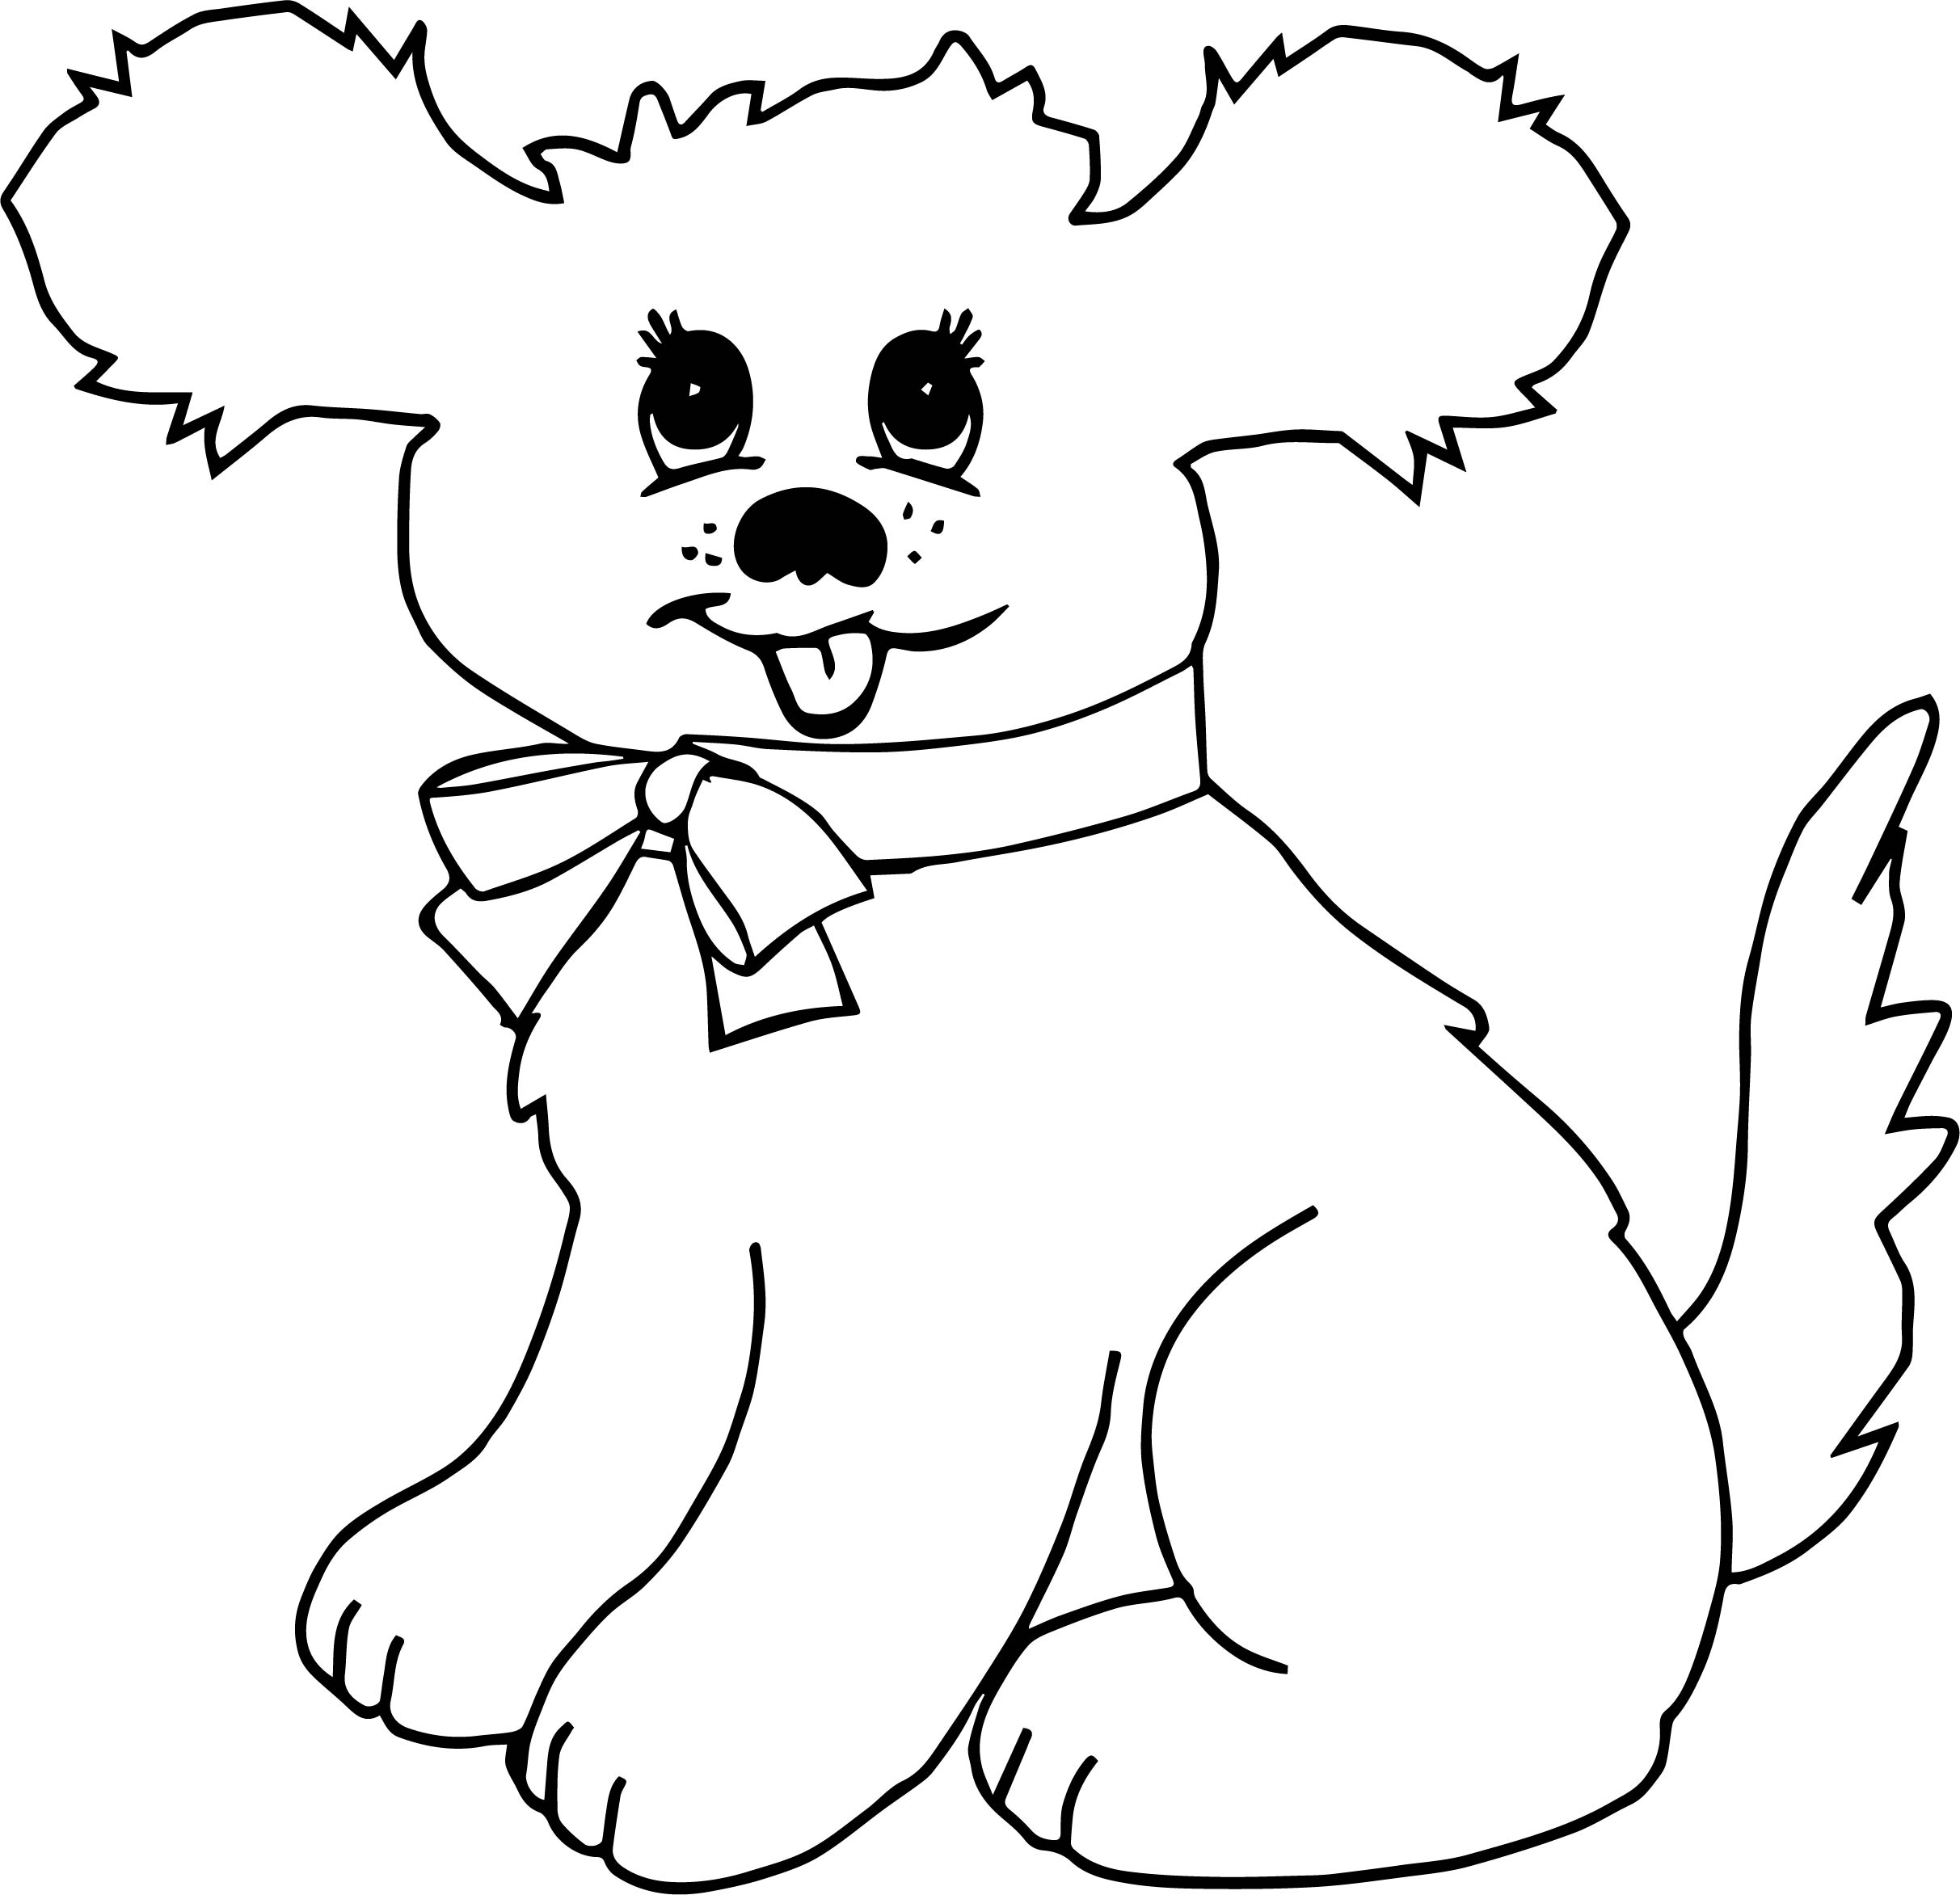 Puppy Dog Cartoon Dog Puppy Coloring Page